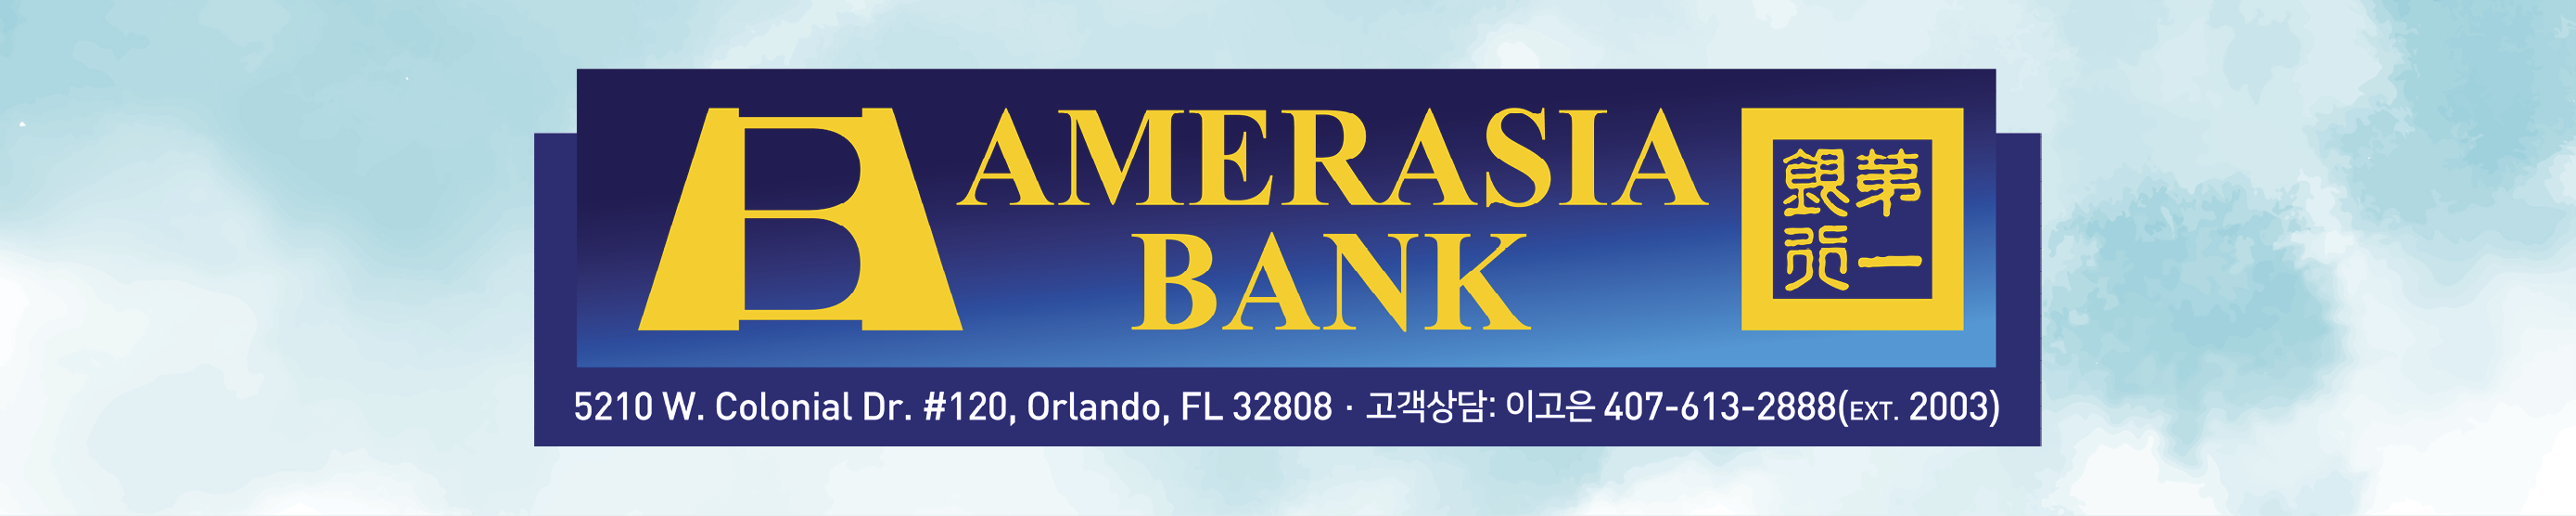 AMERASIA BANK